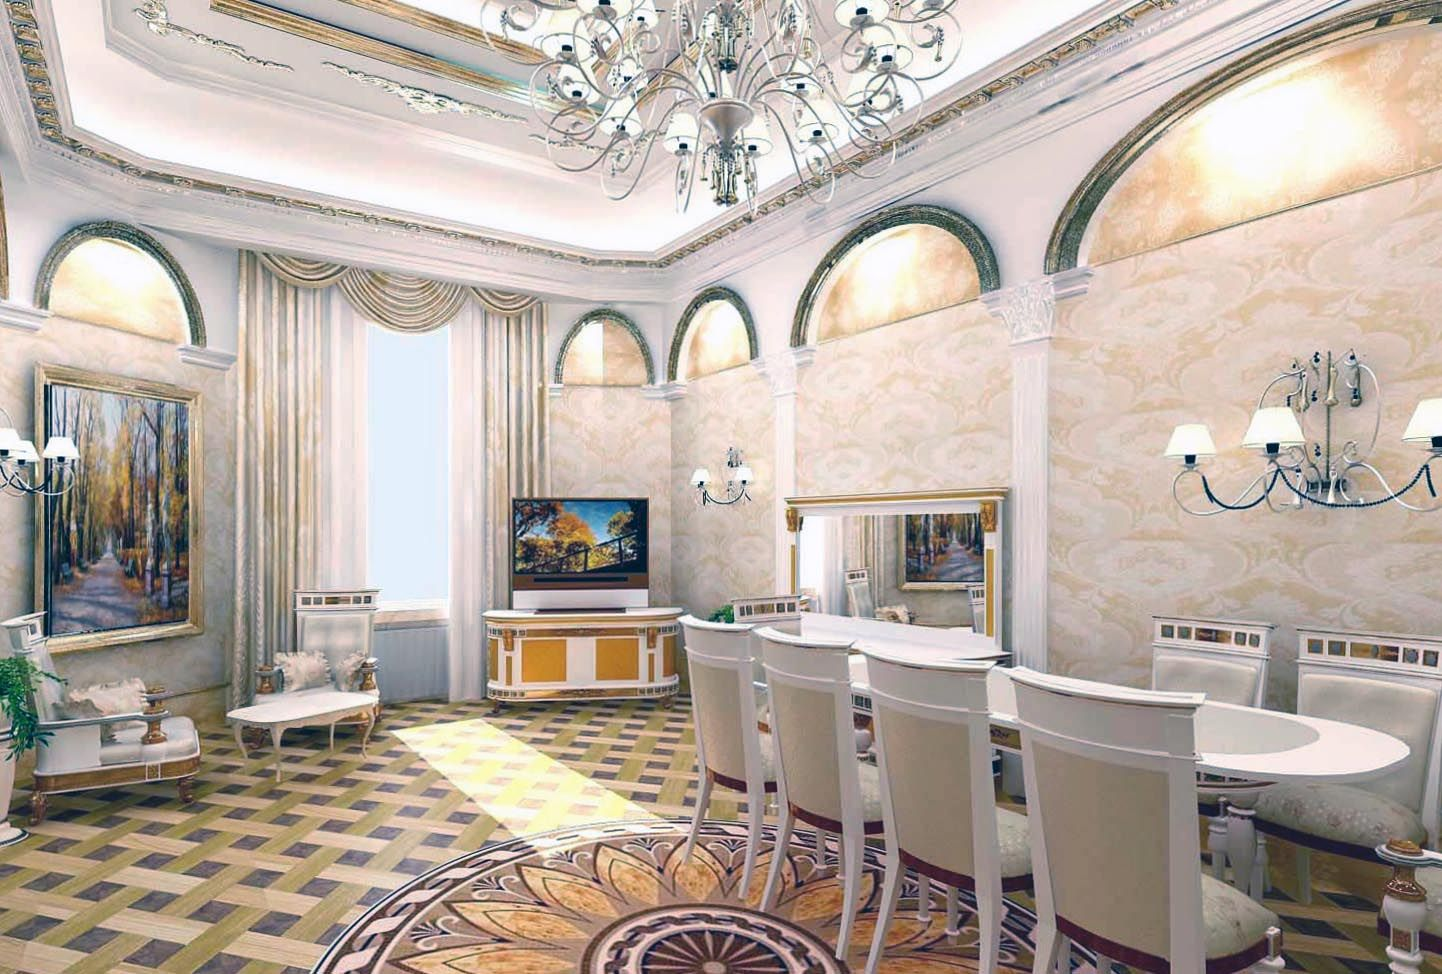 Interior Will Be Harmoniously Complemented By The Mirrors And Paintings In  Massive Frames, Heavy Drapes On Windows And Luxury Carpet.